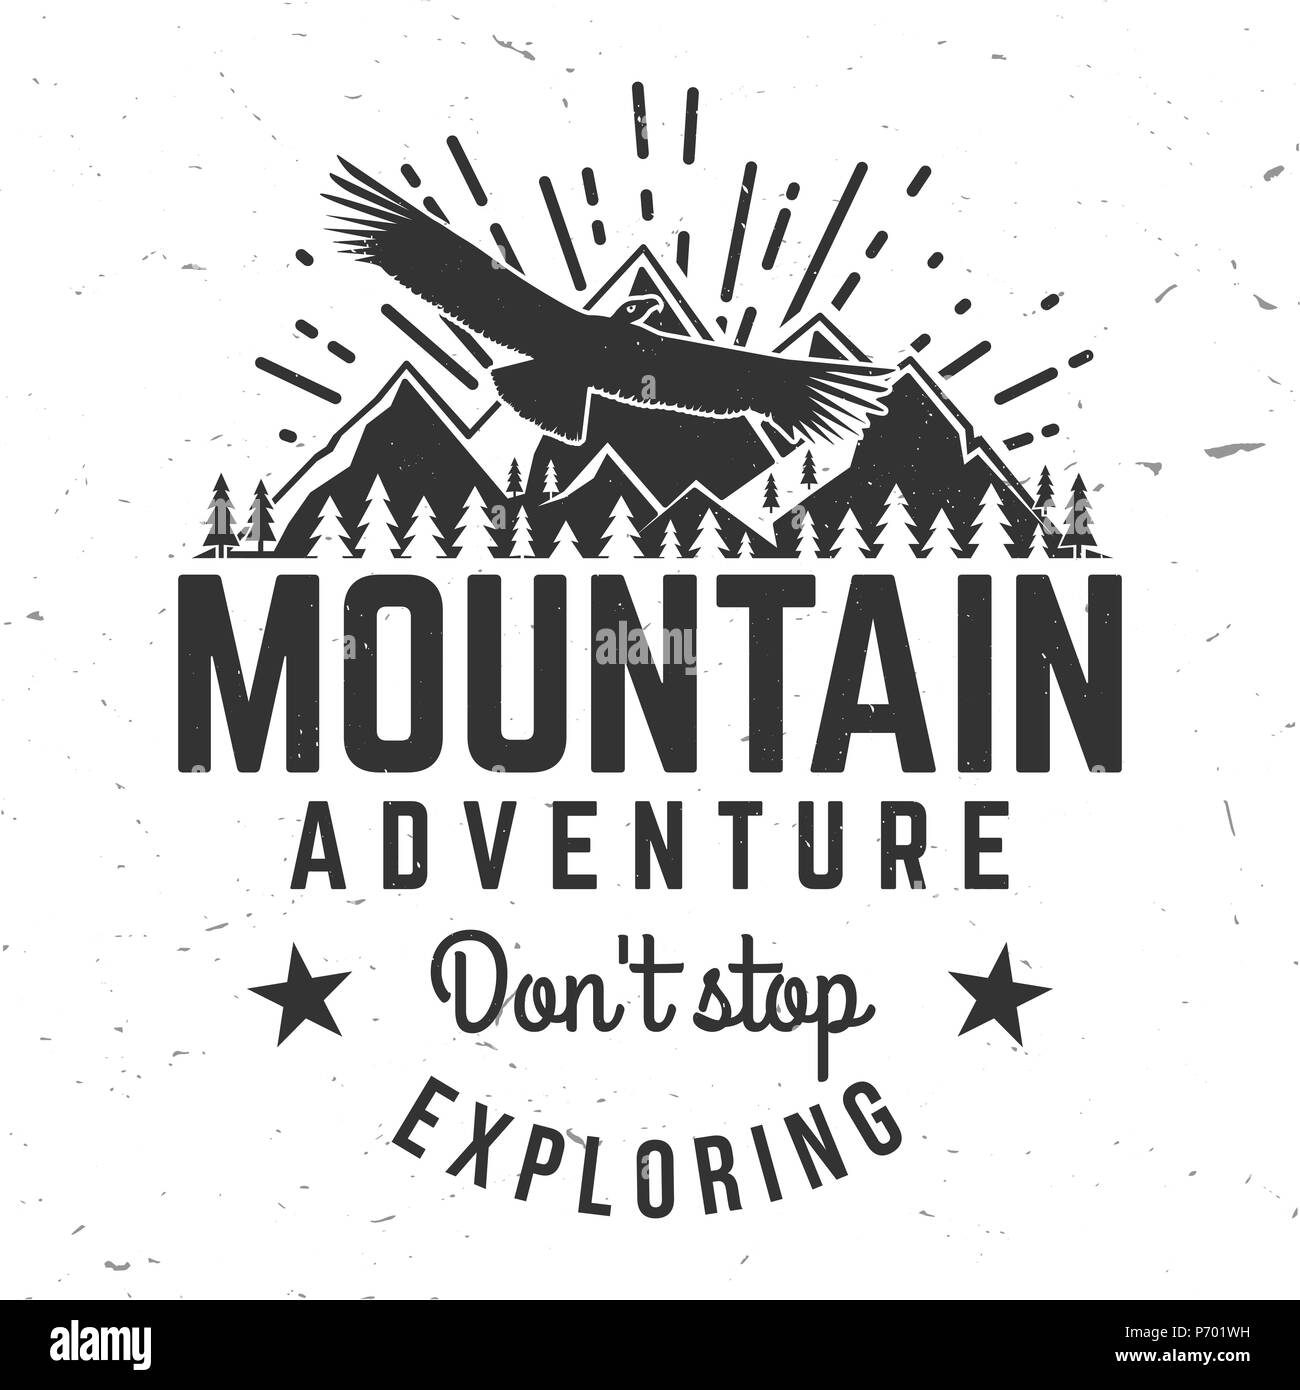 Don't stop exploring. Mountains related typographic quote. Vector illustration. Concept for shirt or logo, print, stamp. - Stock Image